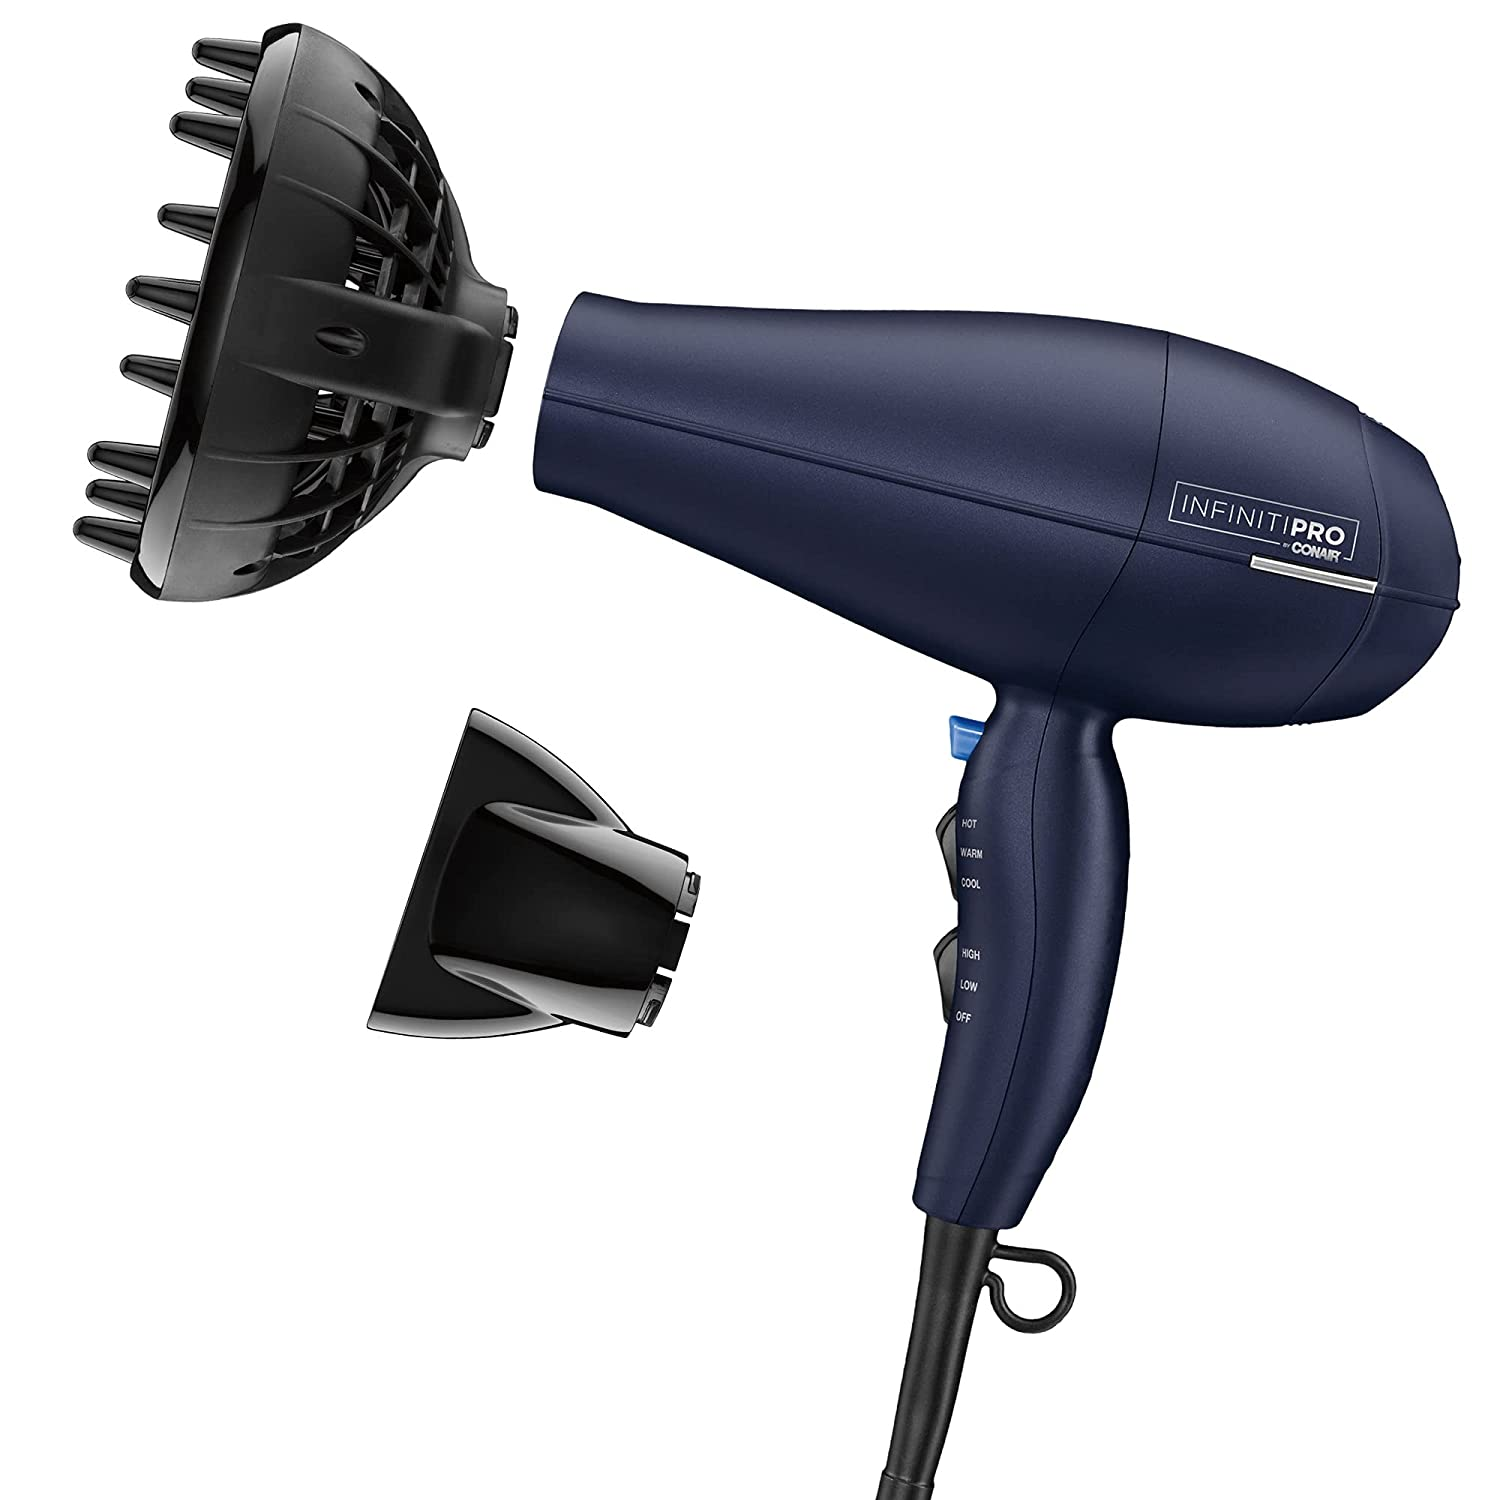 INFINITIPRO BY CONAIR 1875 sold out Watt Texture N San Francisco Mall Dryer Hair Styling for